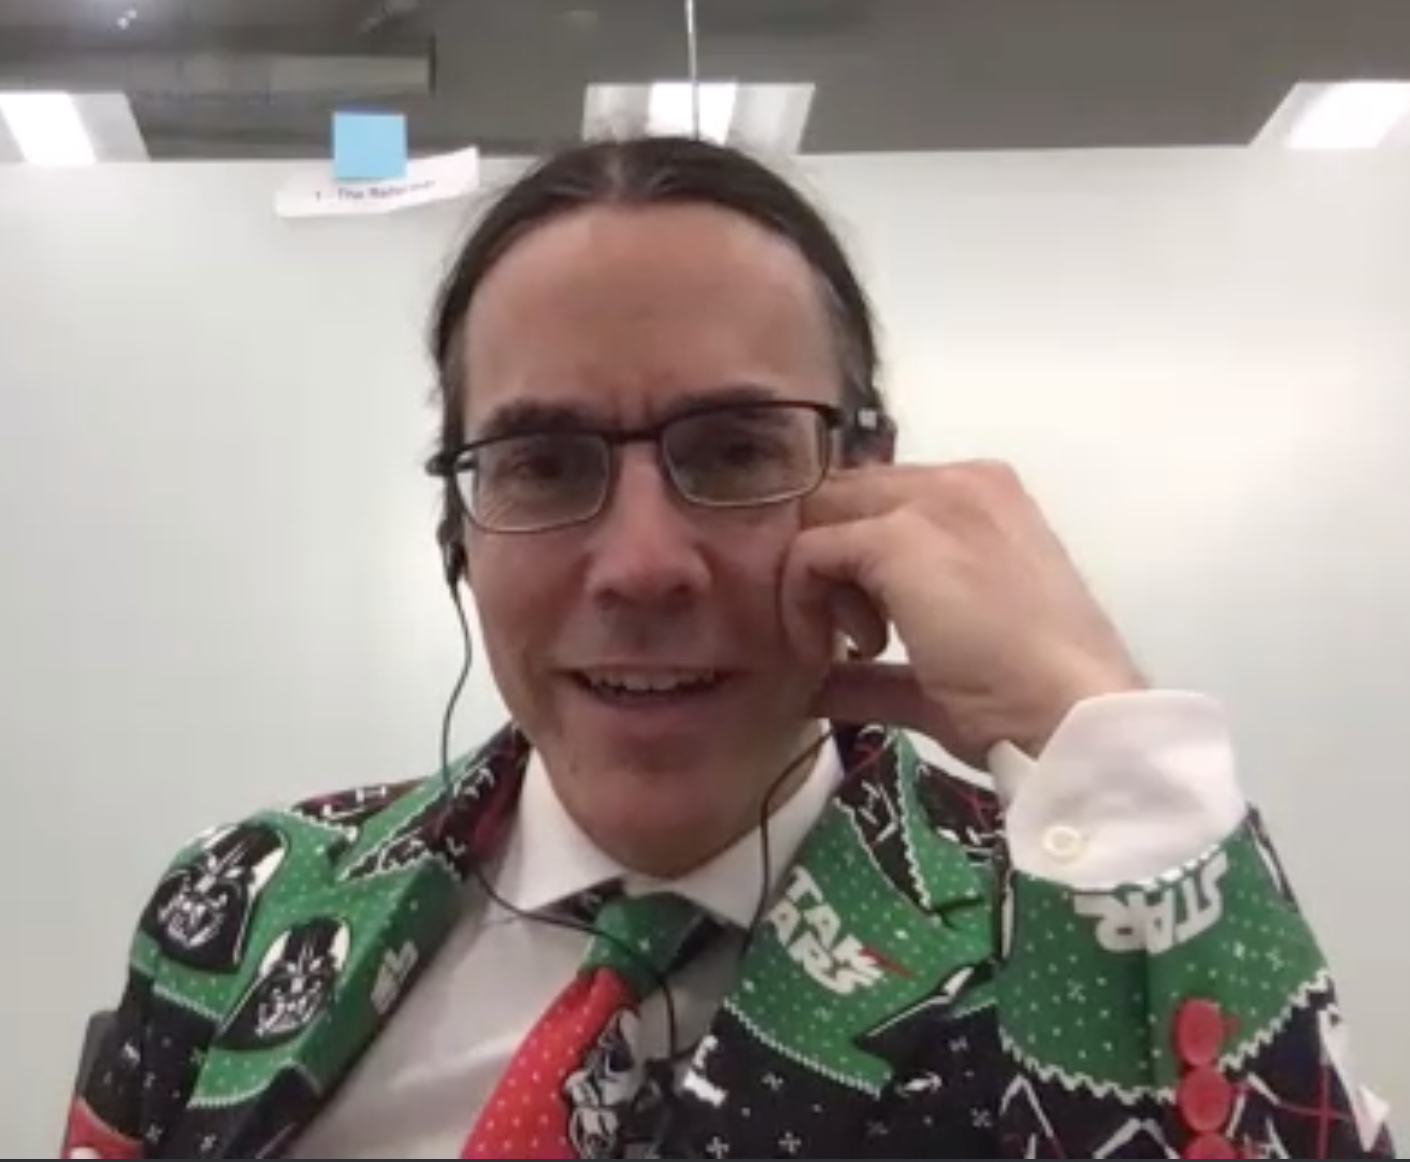 Joe's amazing Star Wars' Christmas themed suit and tie!